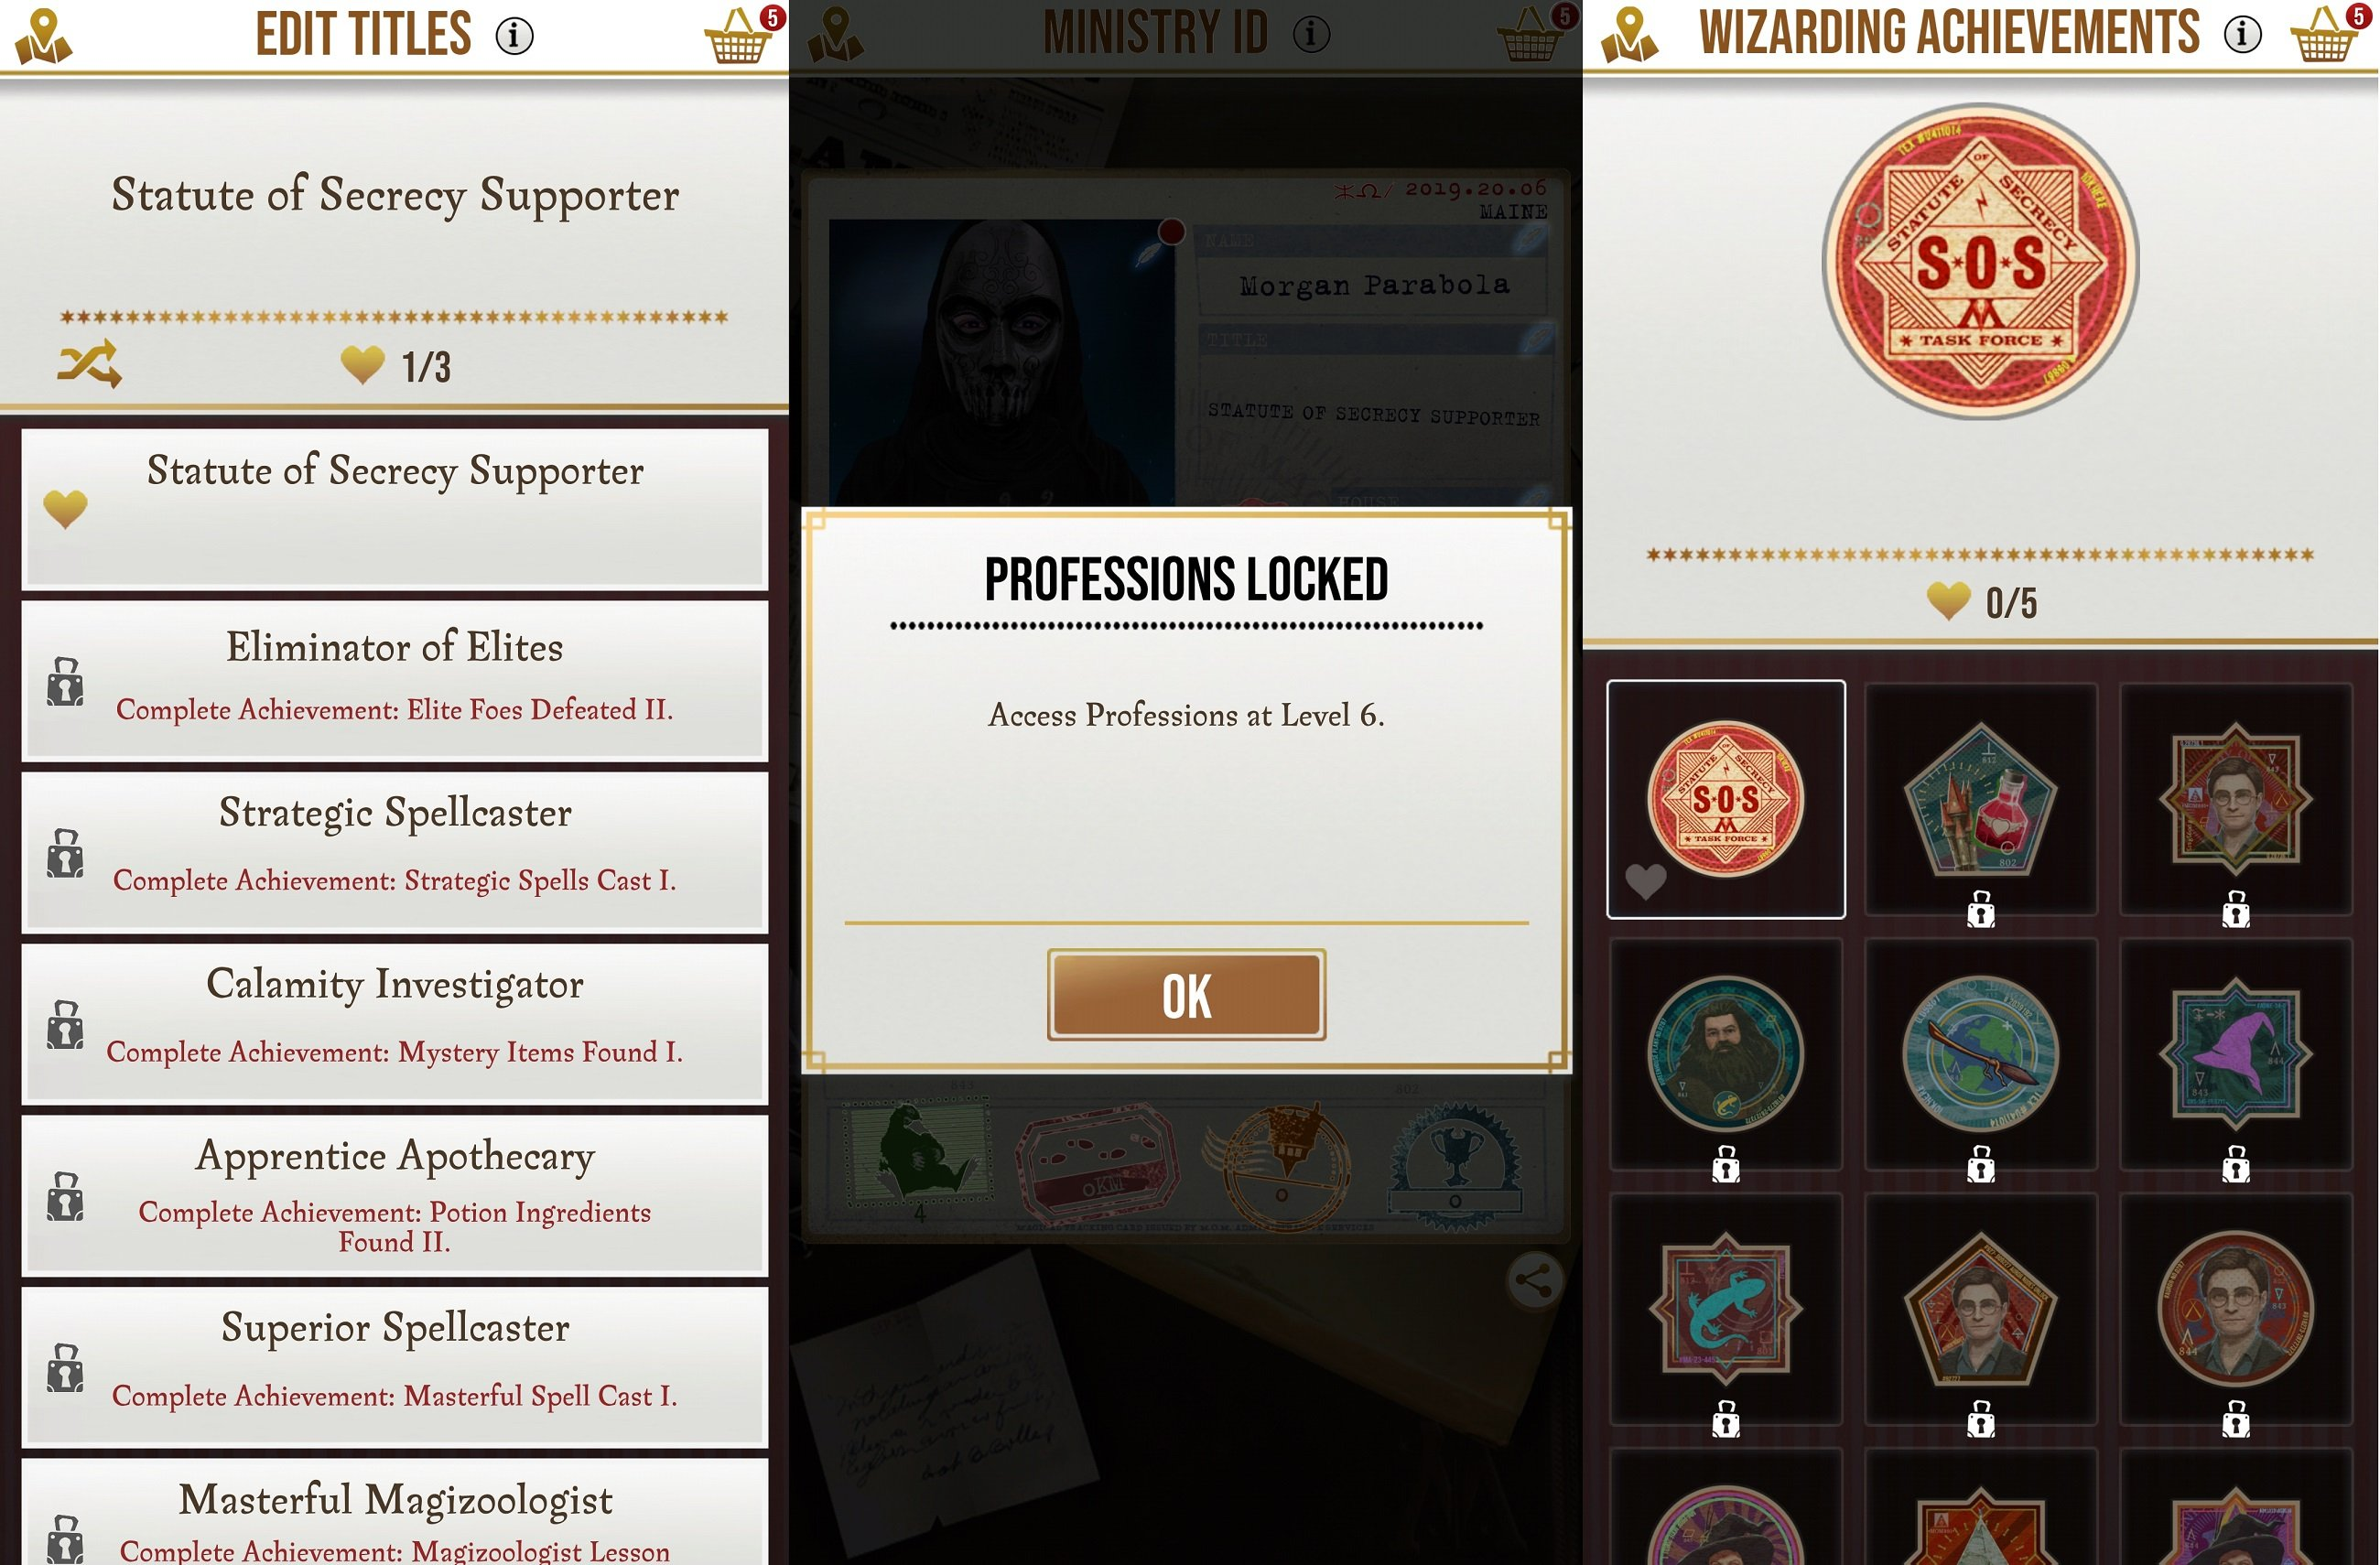 Things like Title, Profession, and Achievements all need to be unlocked as you play through Harry Potter Wizards Unite.